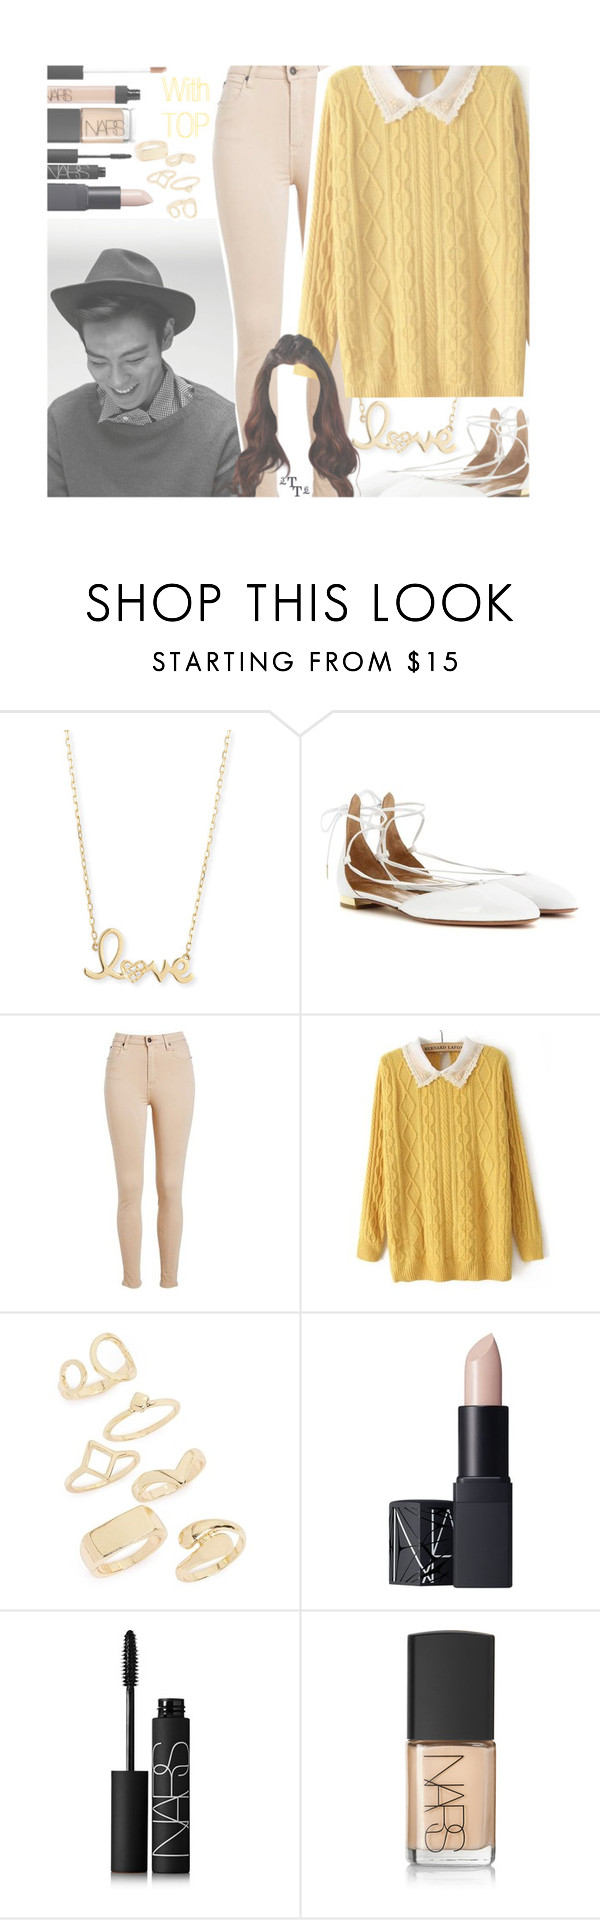 """With T.O.P."" by triple-threat36 ❤ liked on Polyvore featuring Sydney Evan, Aquazzura, Topshop, NARS Cosmetics, bigbang, top, VIP, ChoiSeungHyun and seunghyun"